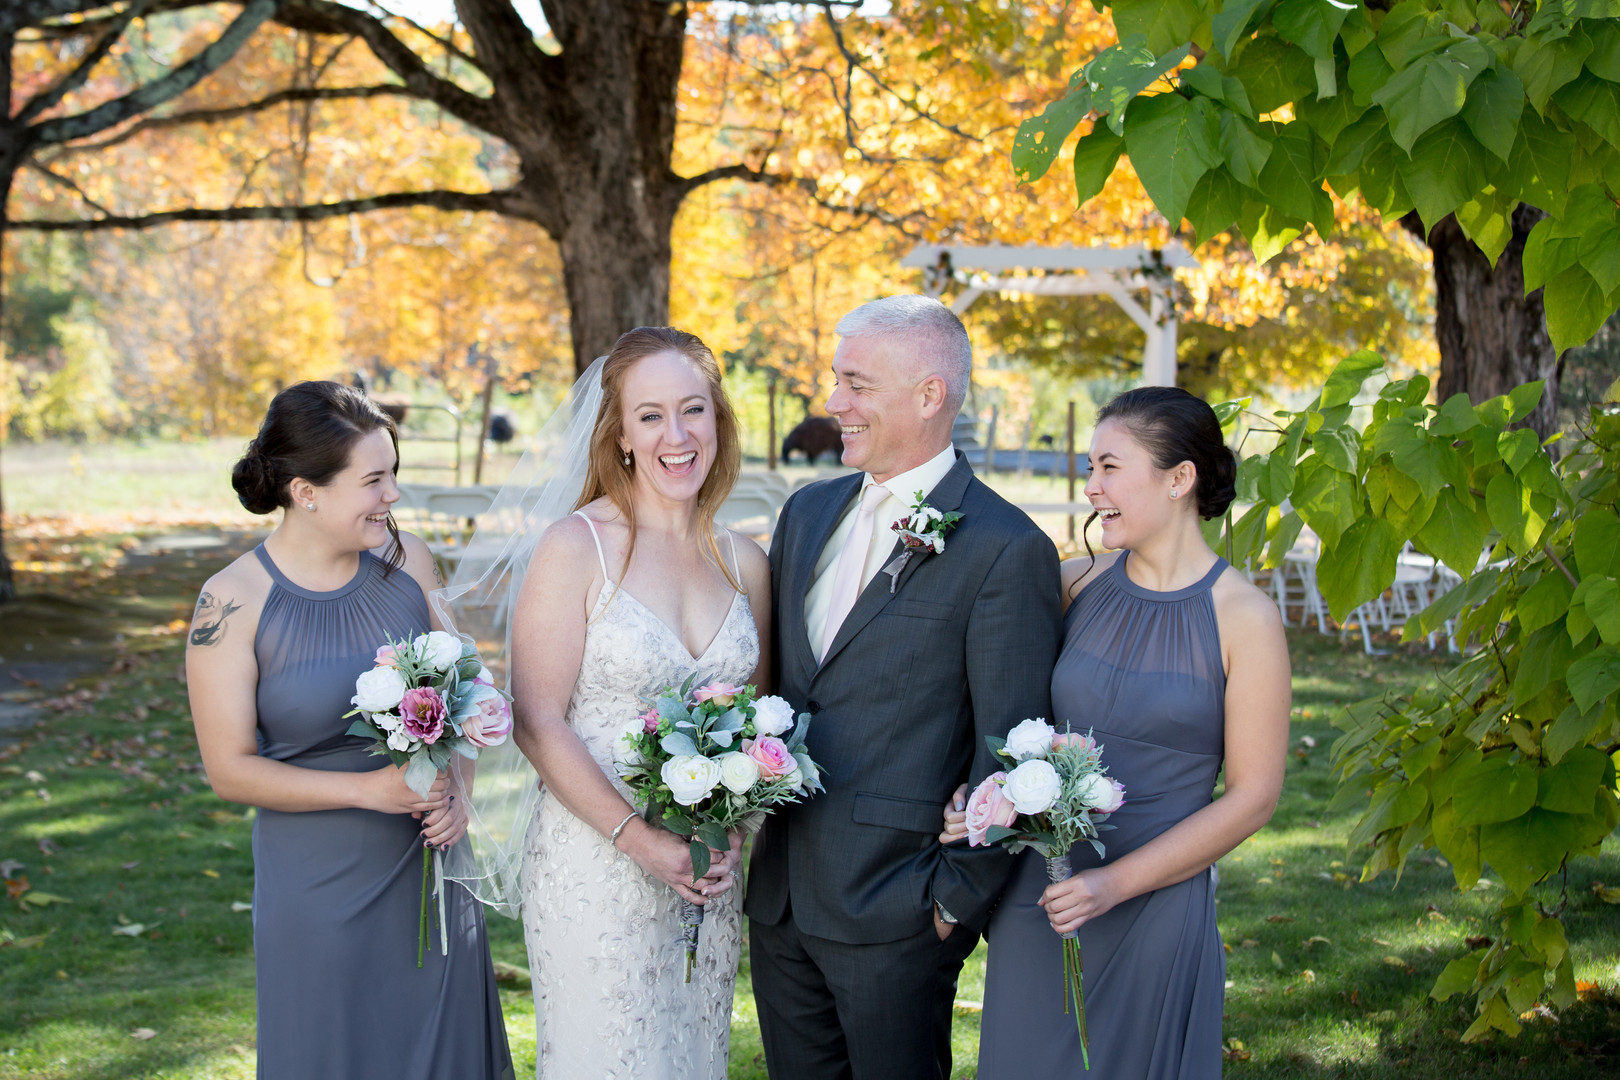 Wedding Party Laughing Portrait